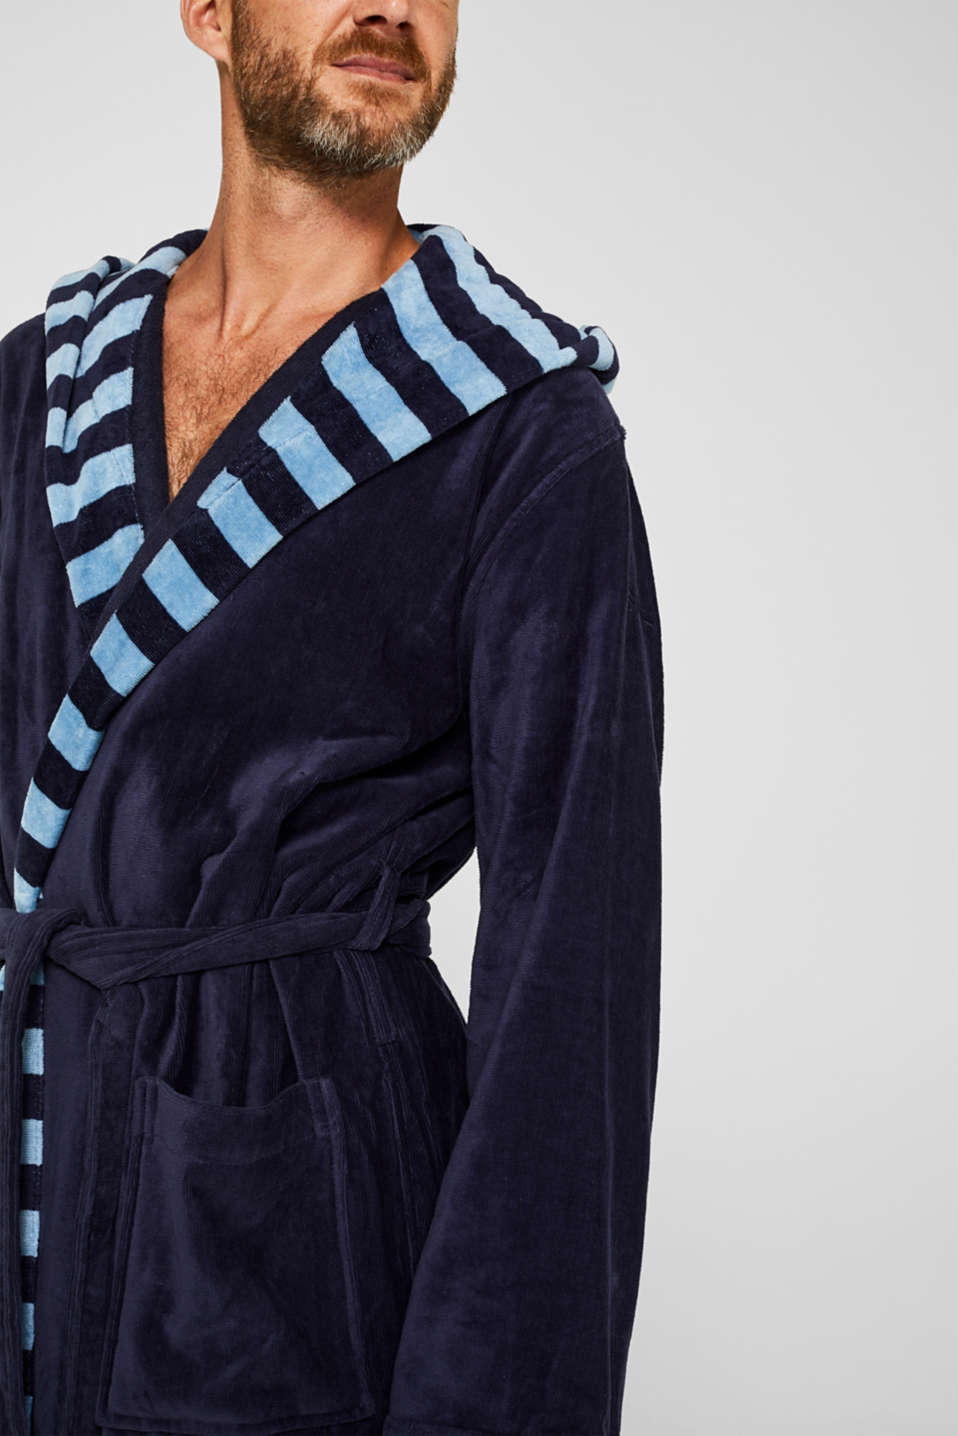 Mens striped bathrobe, 100% cotton, NAVY BLUE, detail image number 3